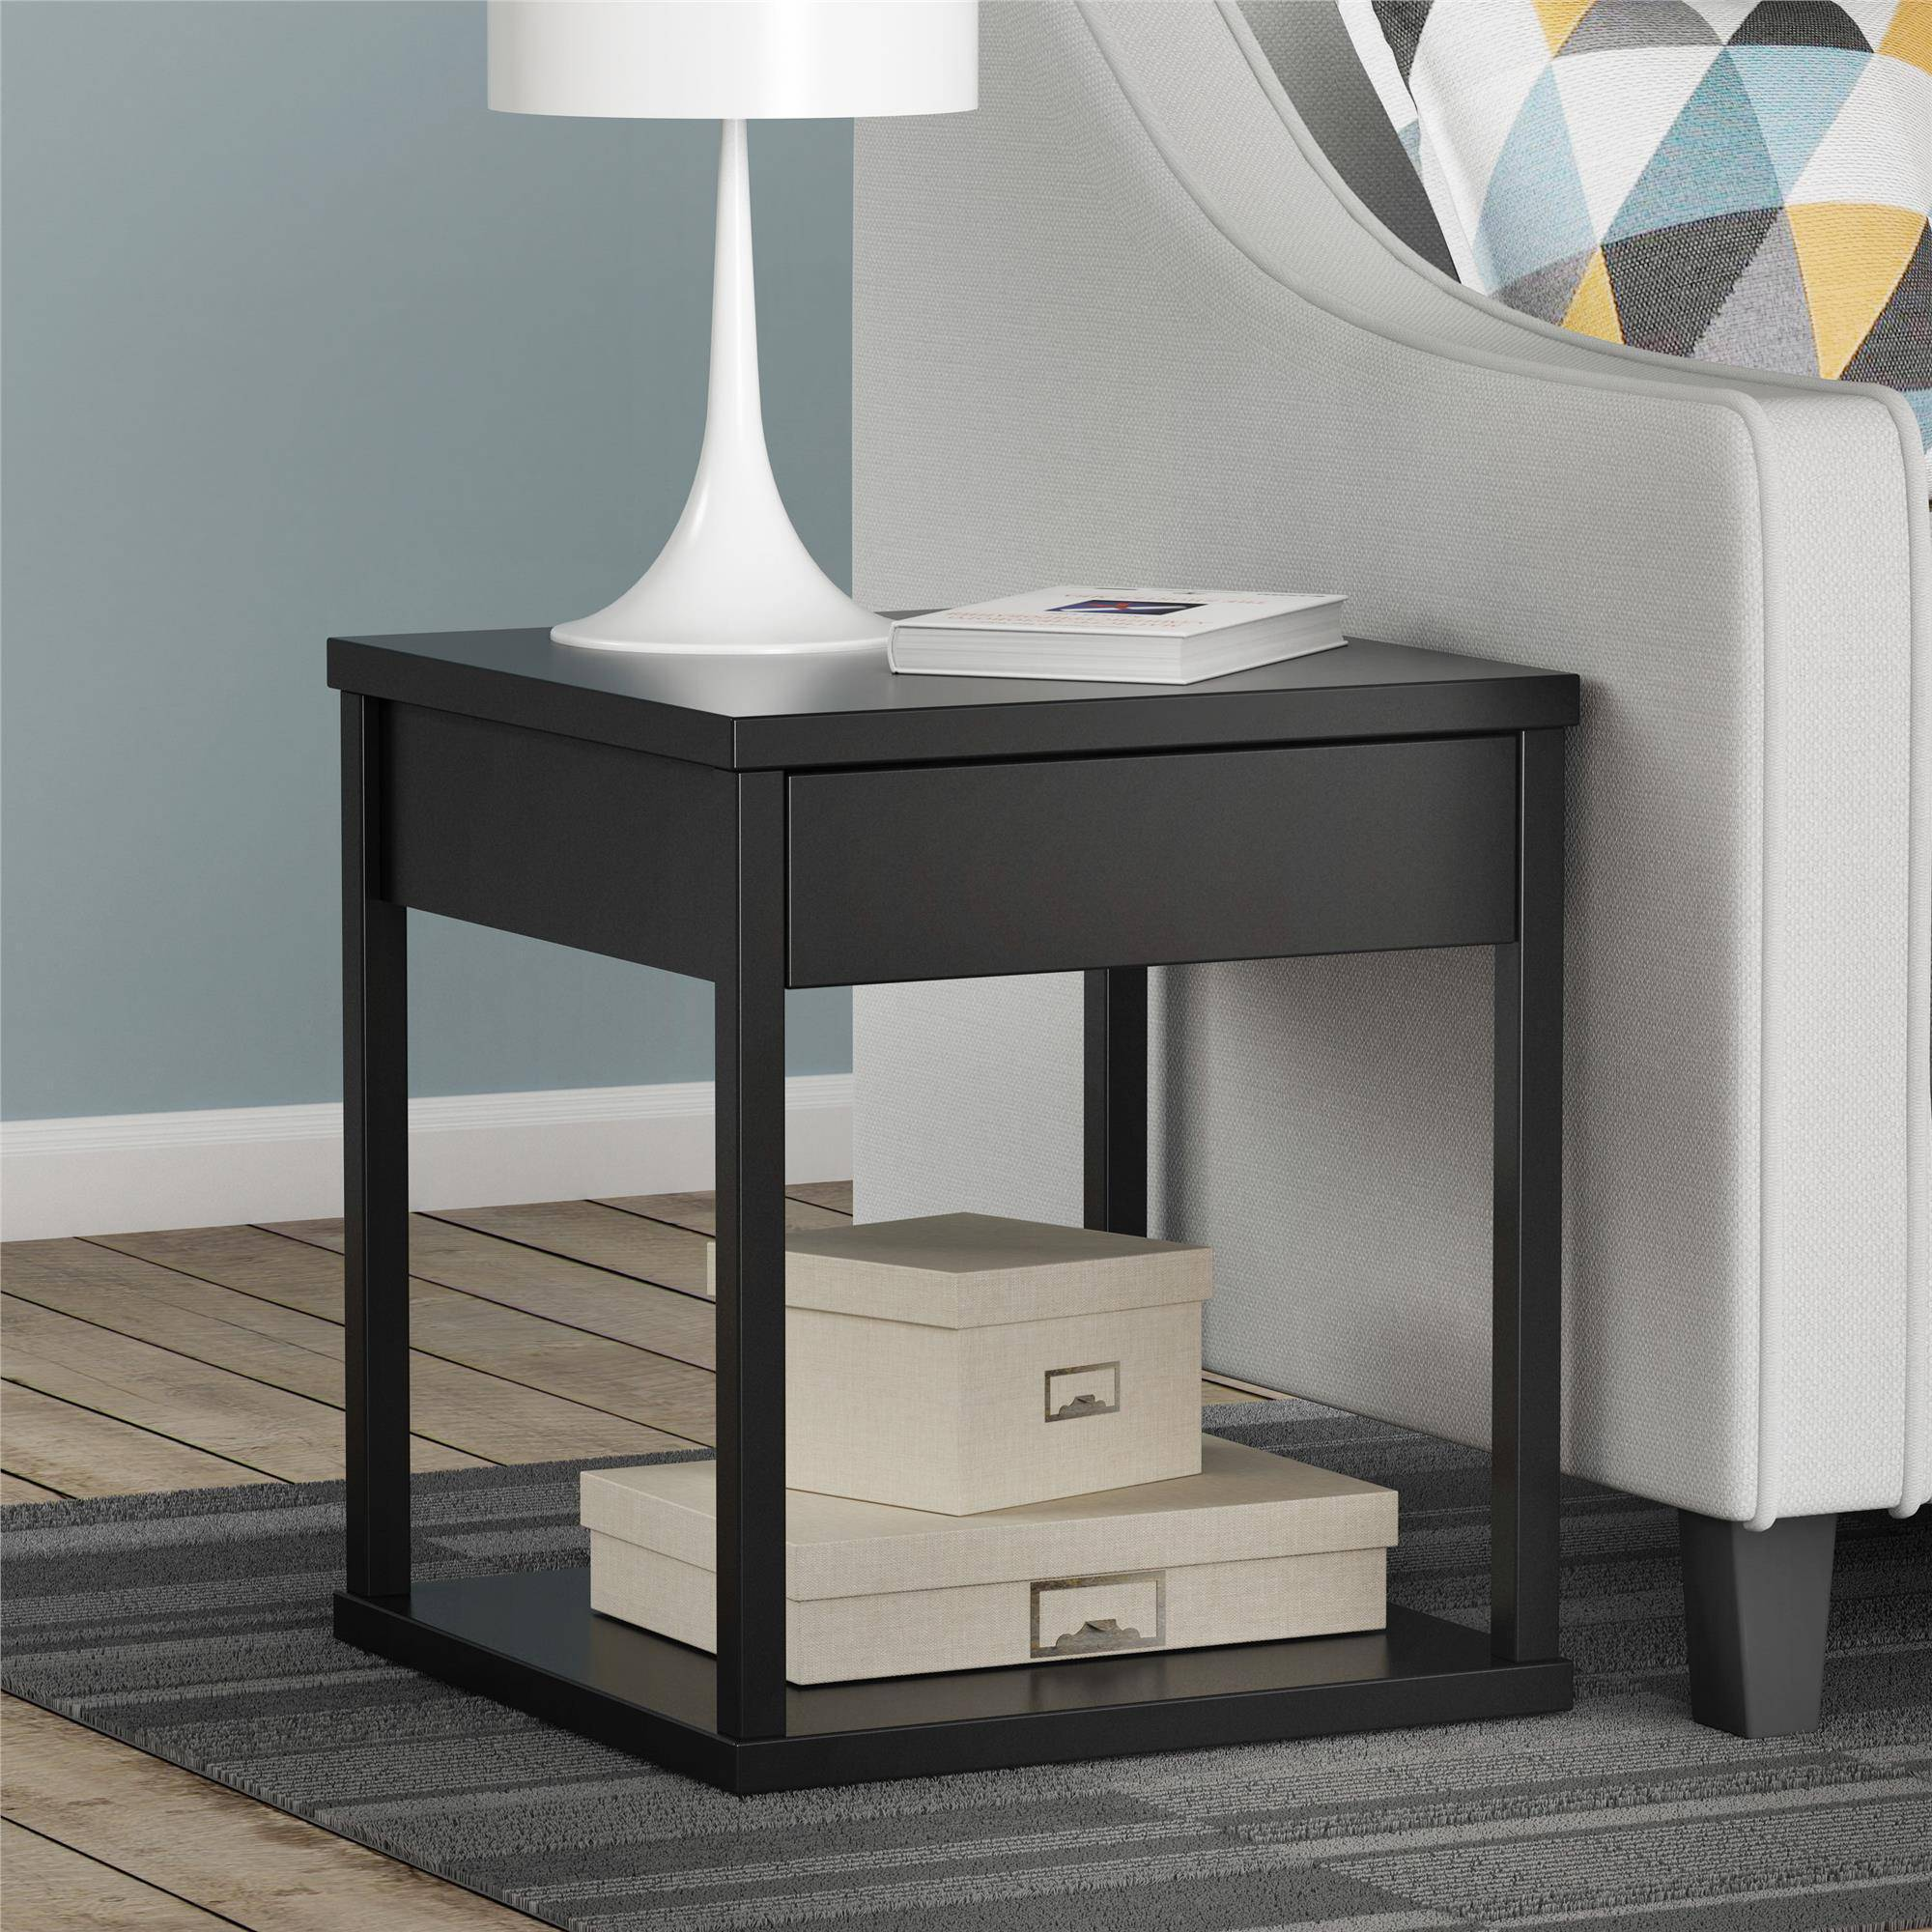 mainstays drawer nightstand end table black ebony ash oak finish silver drum shabby chic coffee and tables thomasville mahogany bedroom furniture small dark wood inch glass top